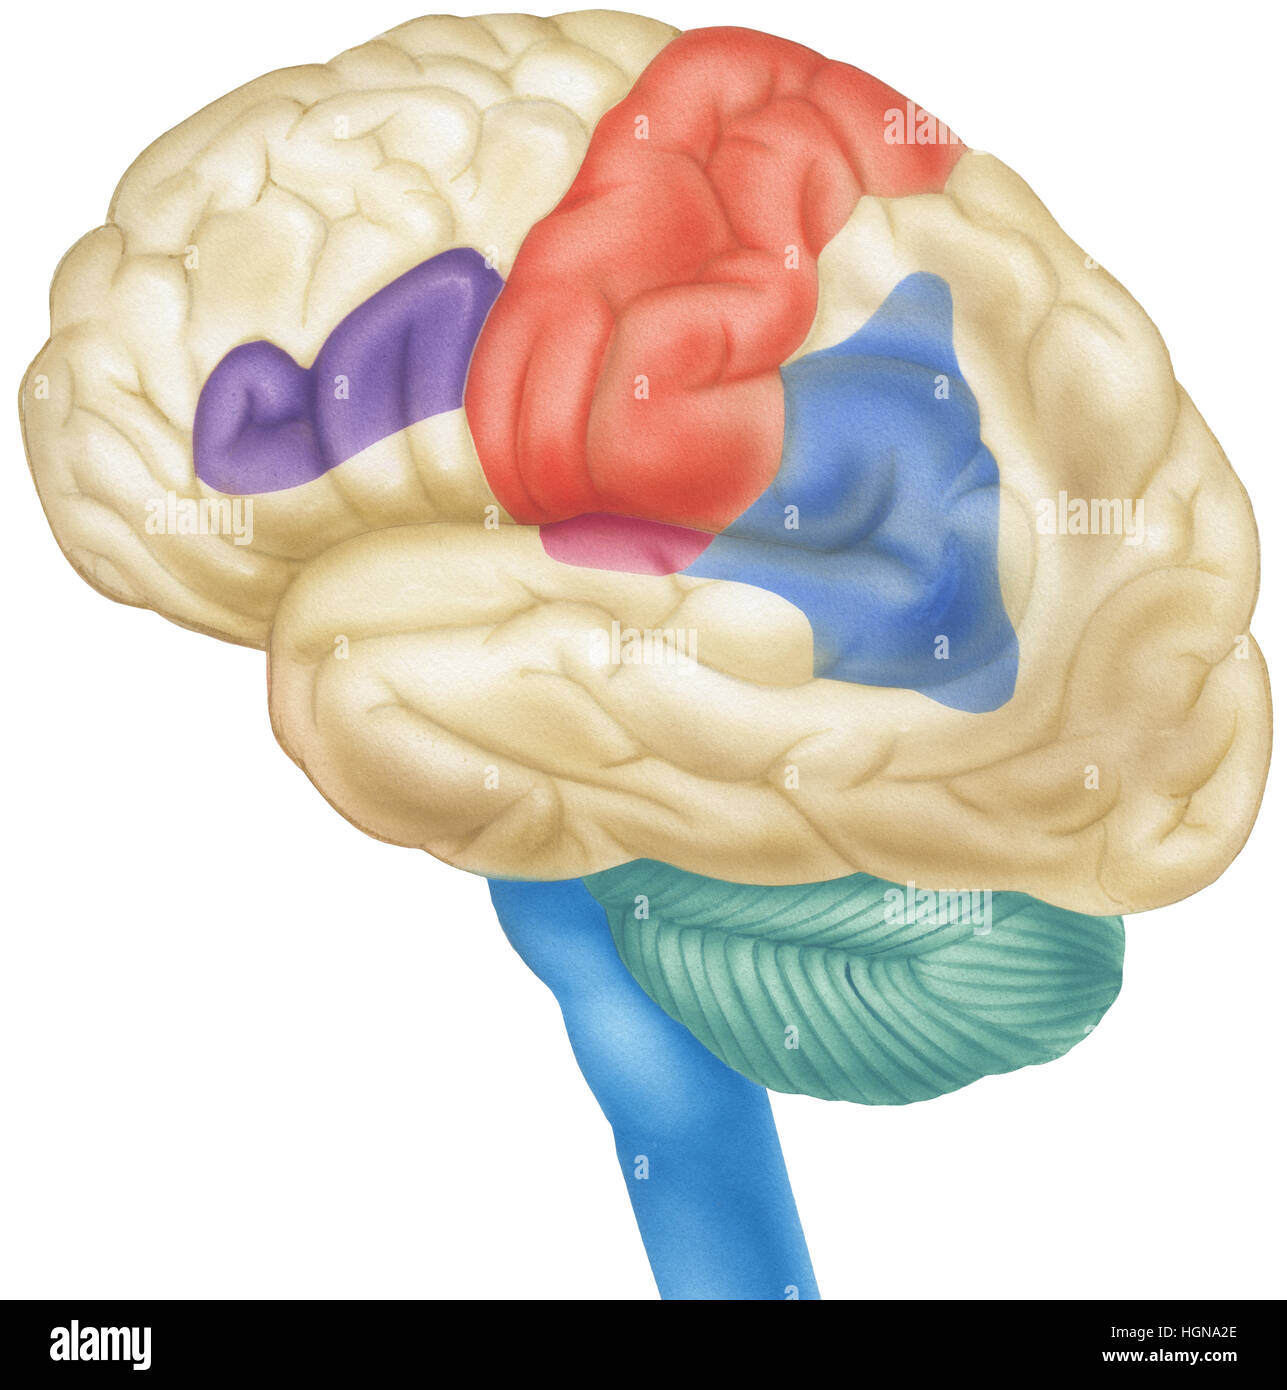 Side View Of The Human Brain Shown Are The Parietal Lobes Sensory